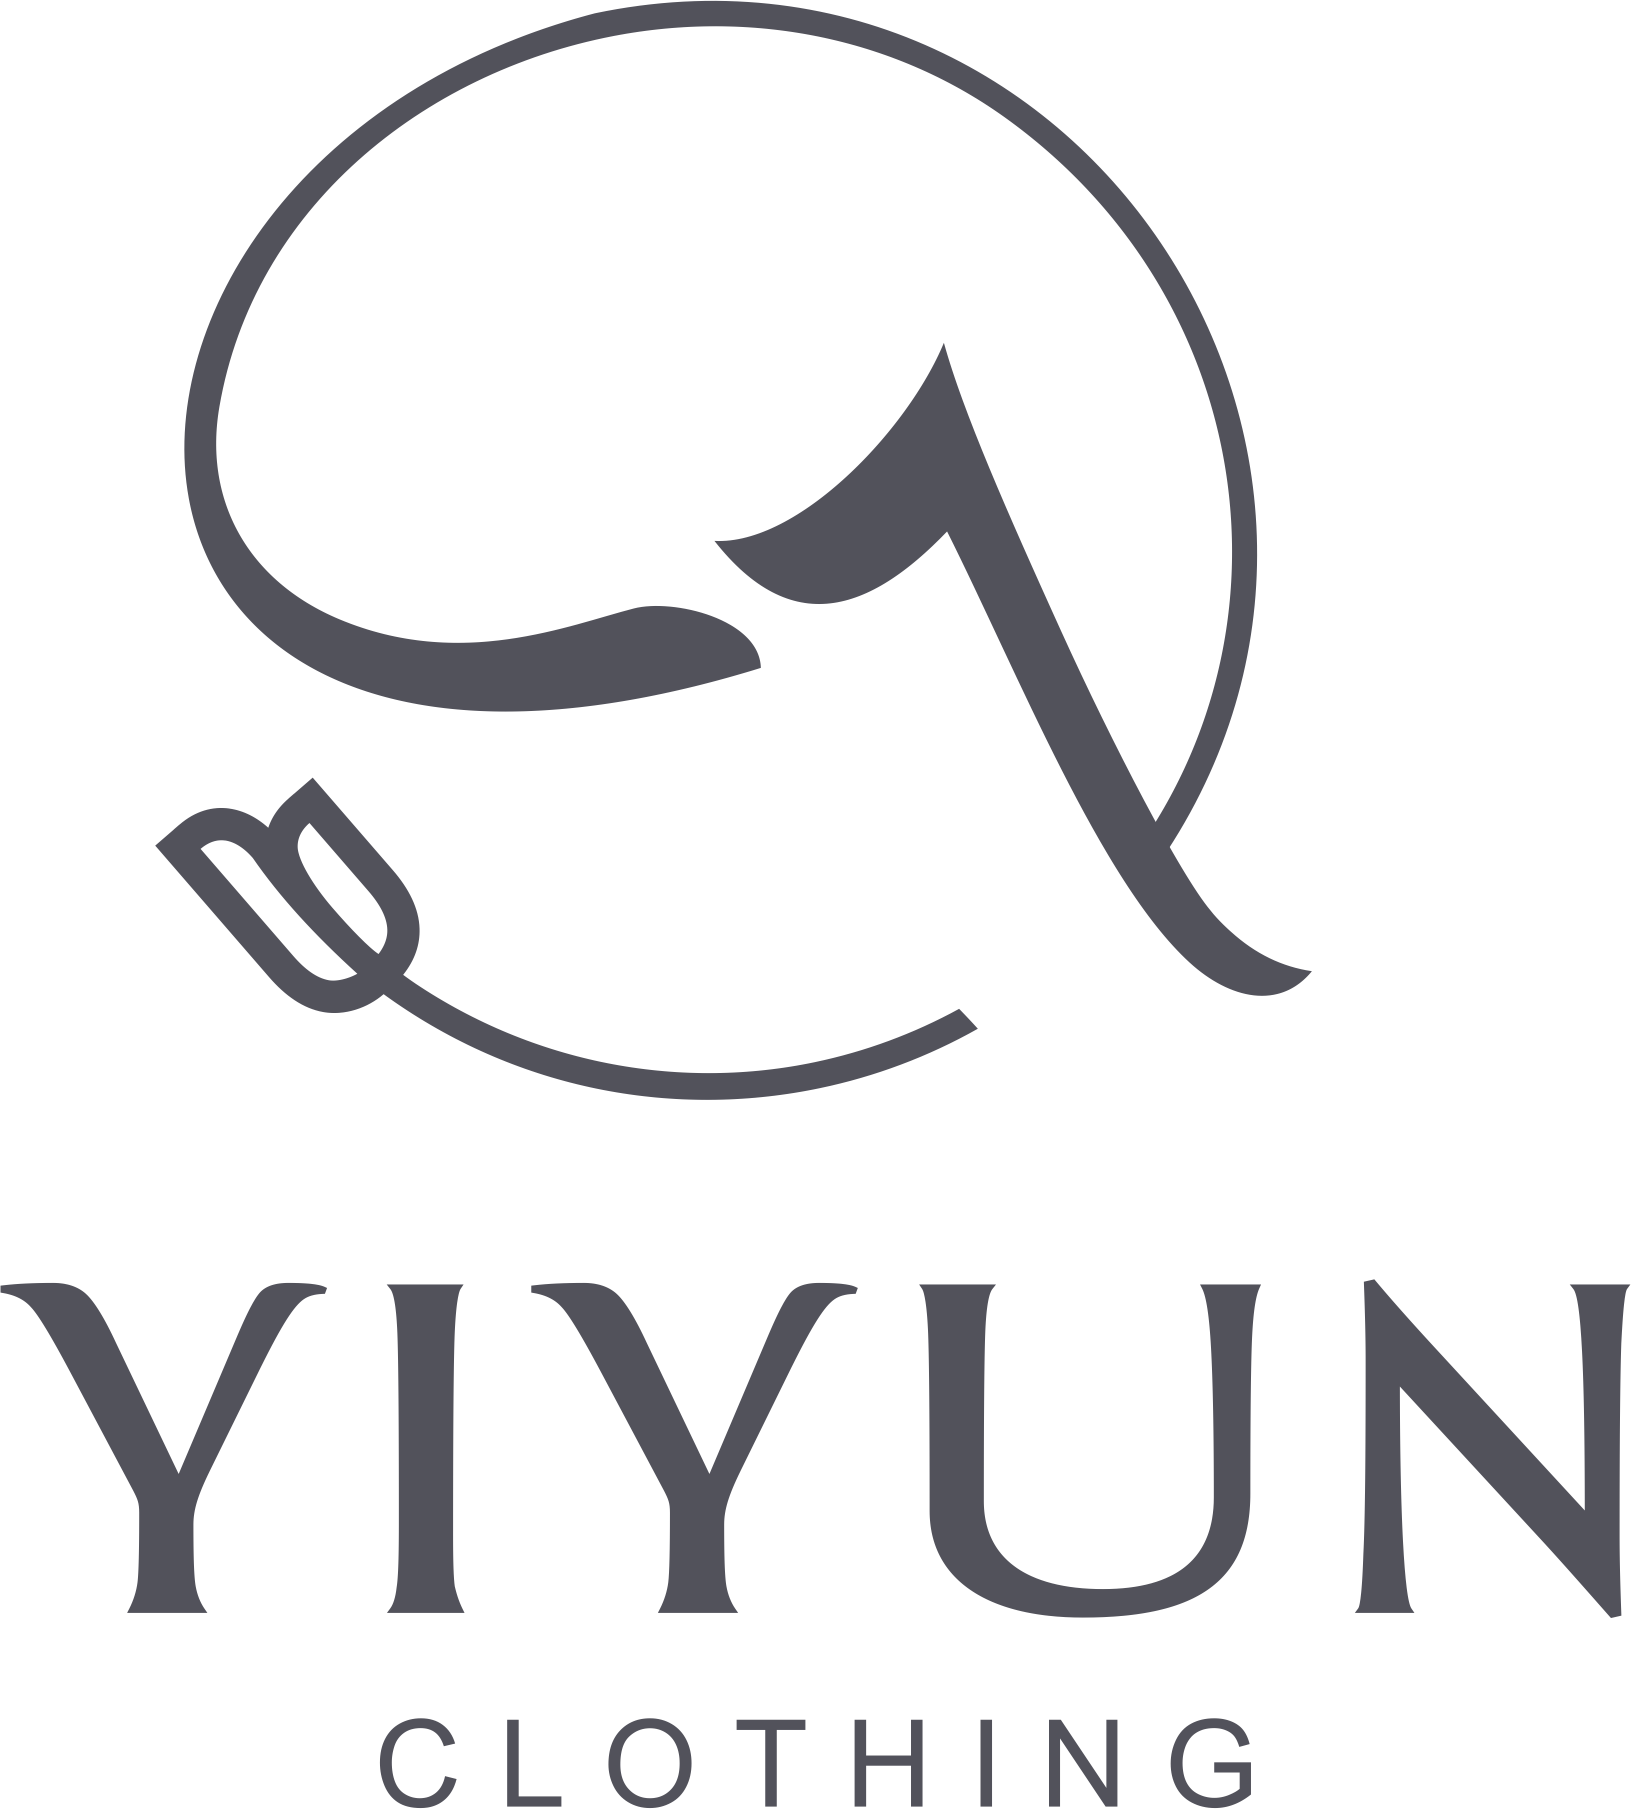 YIYUN CLOTHING(LOGO透明格式